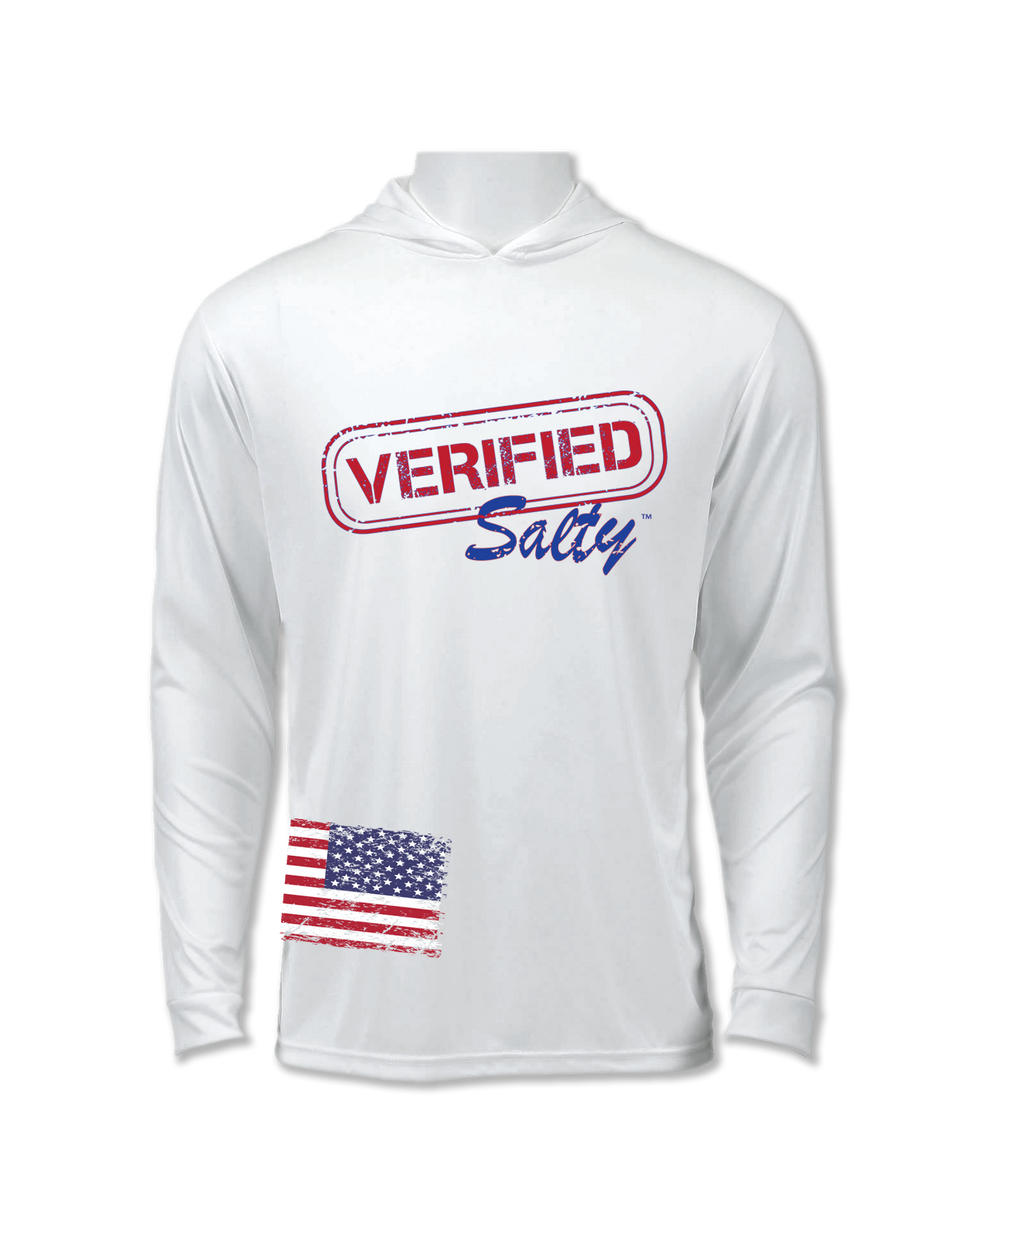 Verified Salty UV 50+ Protection Hoodie Shirt with Long Sleeves and Antimicrobial Finish for Men and Women AMERICA